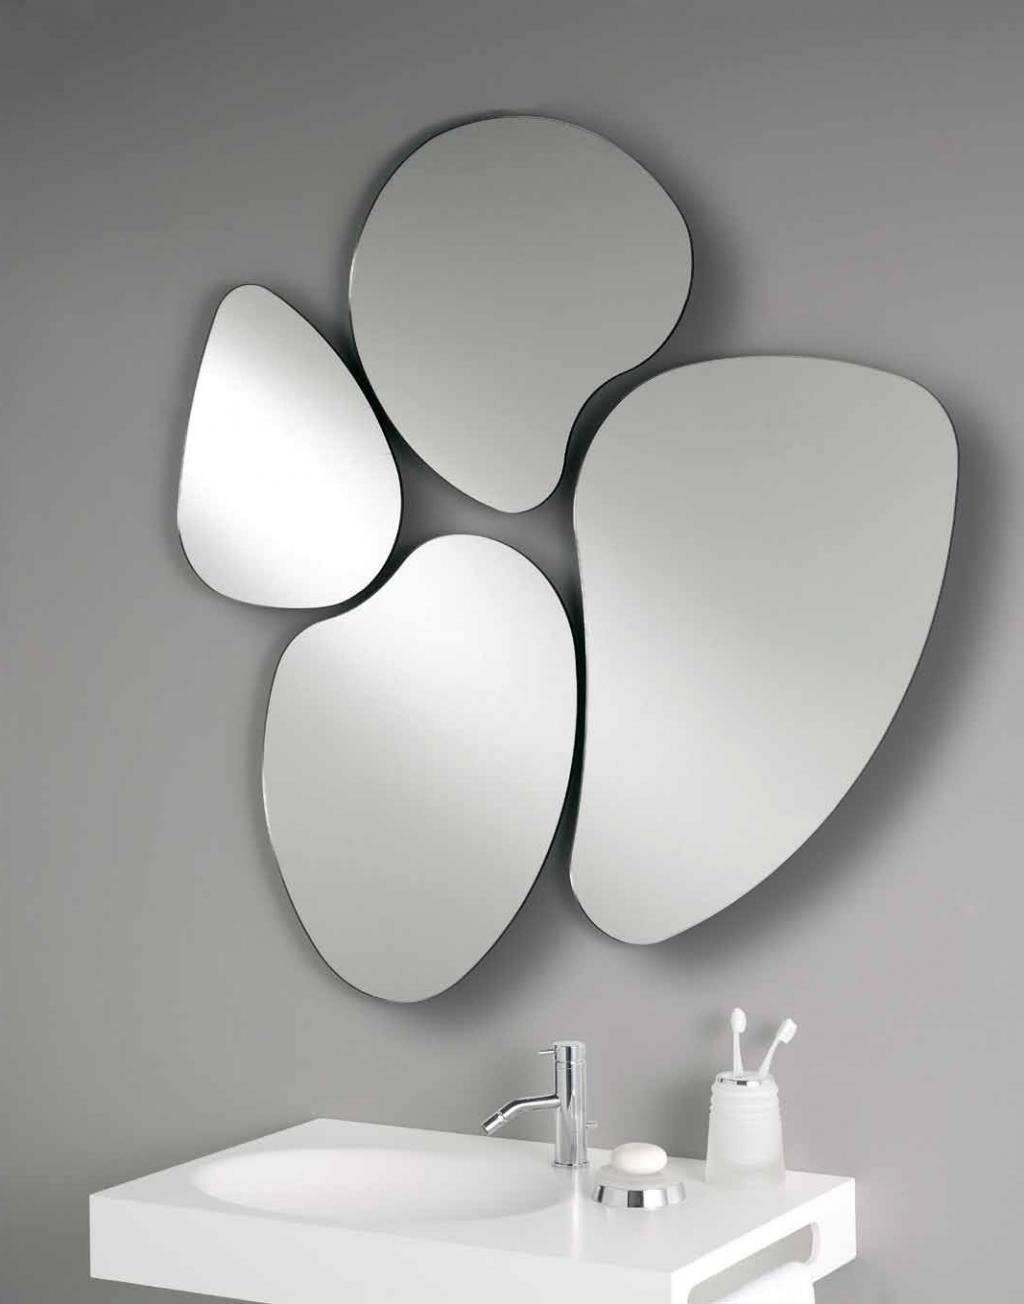 Uncategorized shaped mirrors englishsurvivalkit home design Odd shaped mirrors